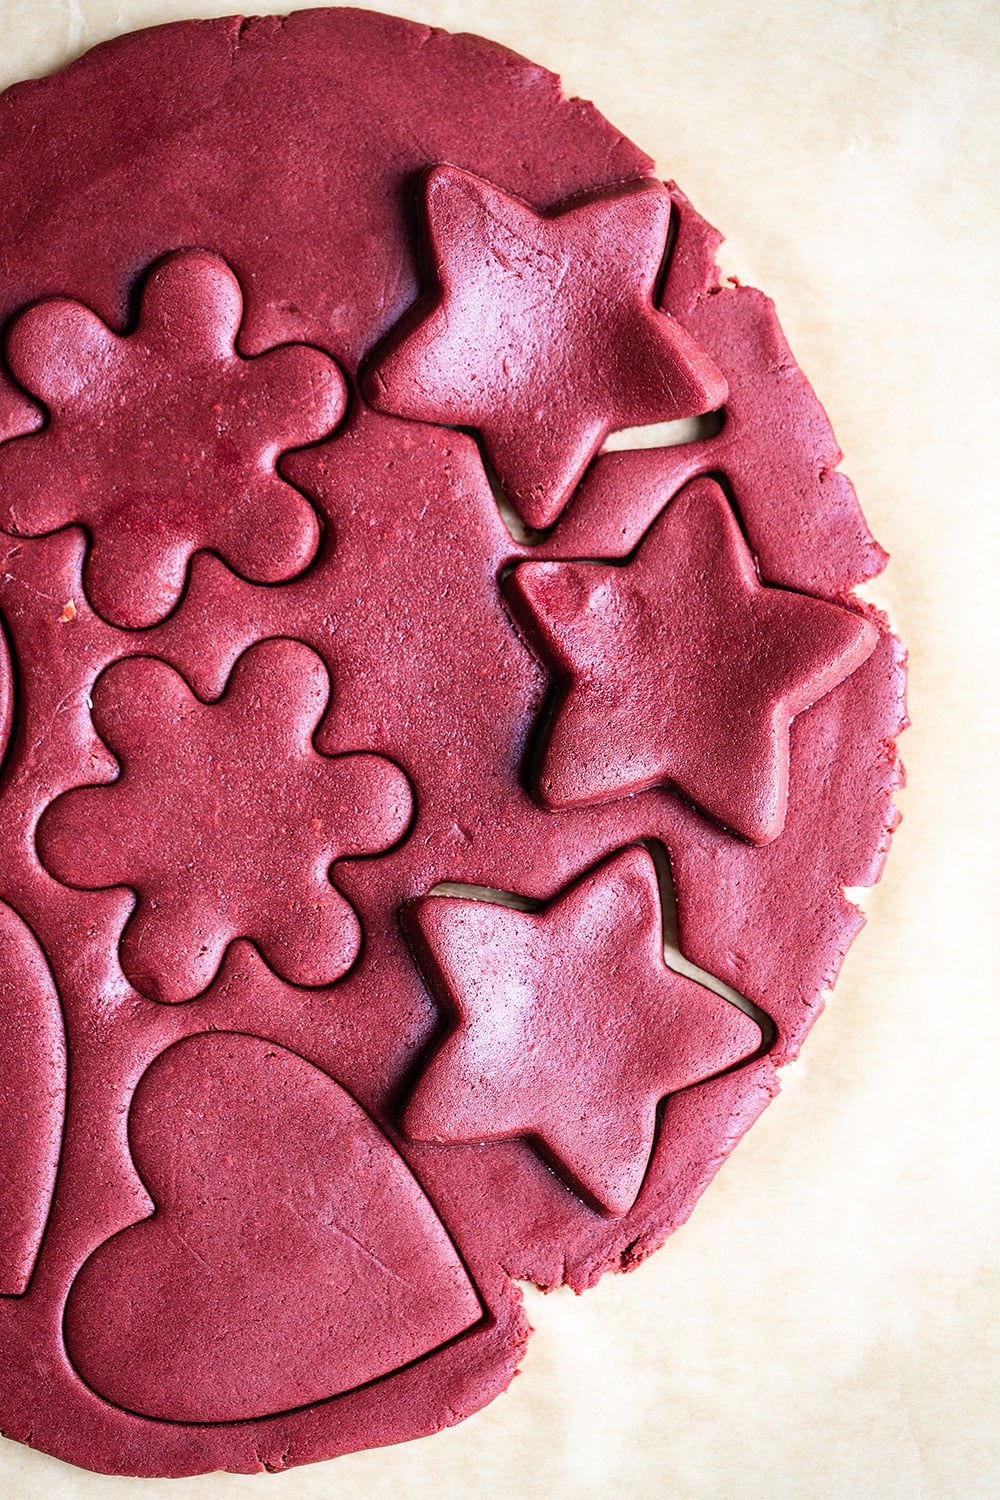 red velvet cookie dough and cookie cutter